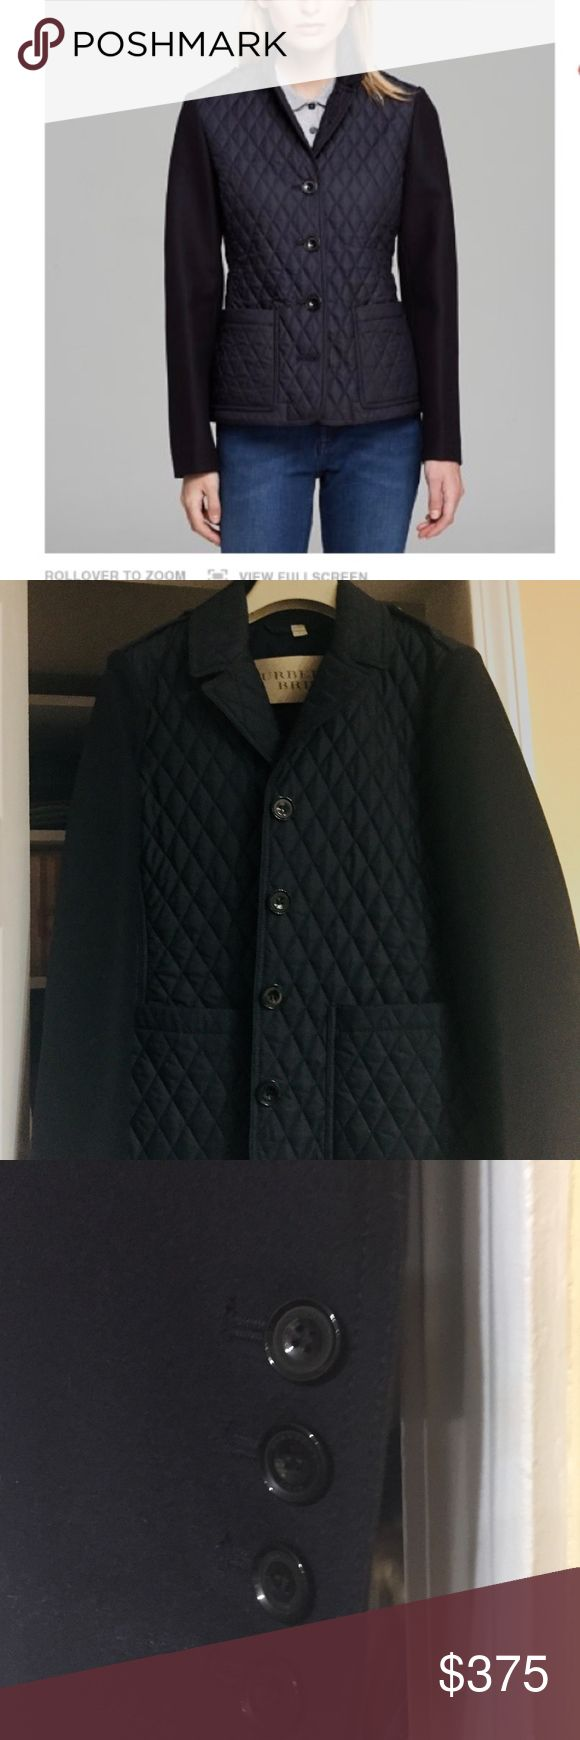 New Burberry Brit Jacket Never worn Classic Navy jacket with diamond quilting on bodice and contrast wool sleeves.lapel collar. epilogs  wool sleeves with button cuff. front button with two hip patch pockets.Button back tab waist and peplum. Lined. Burberry Jackets & Coats